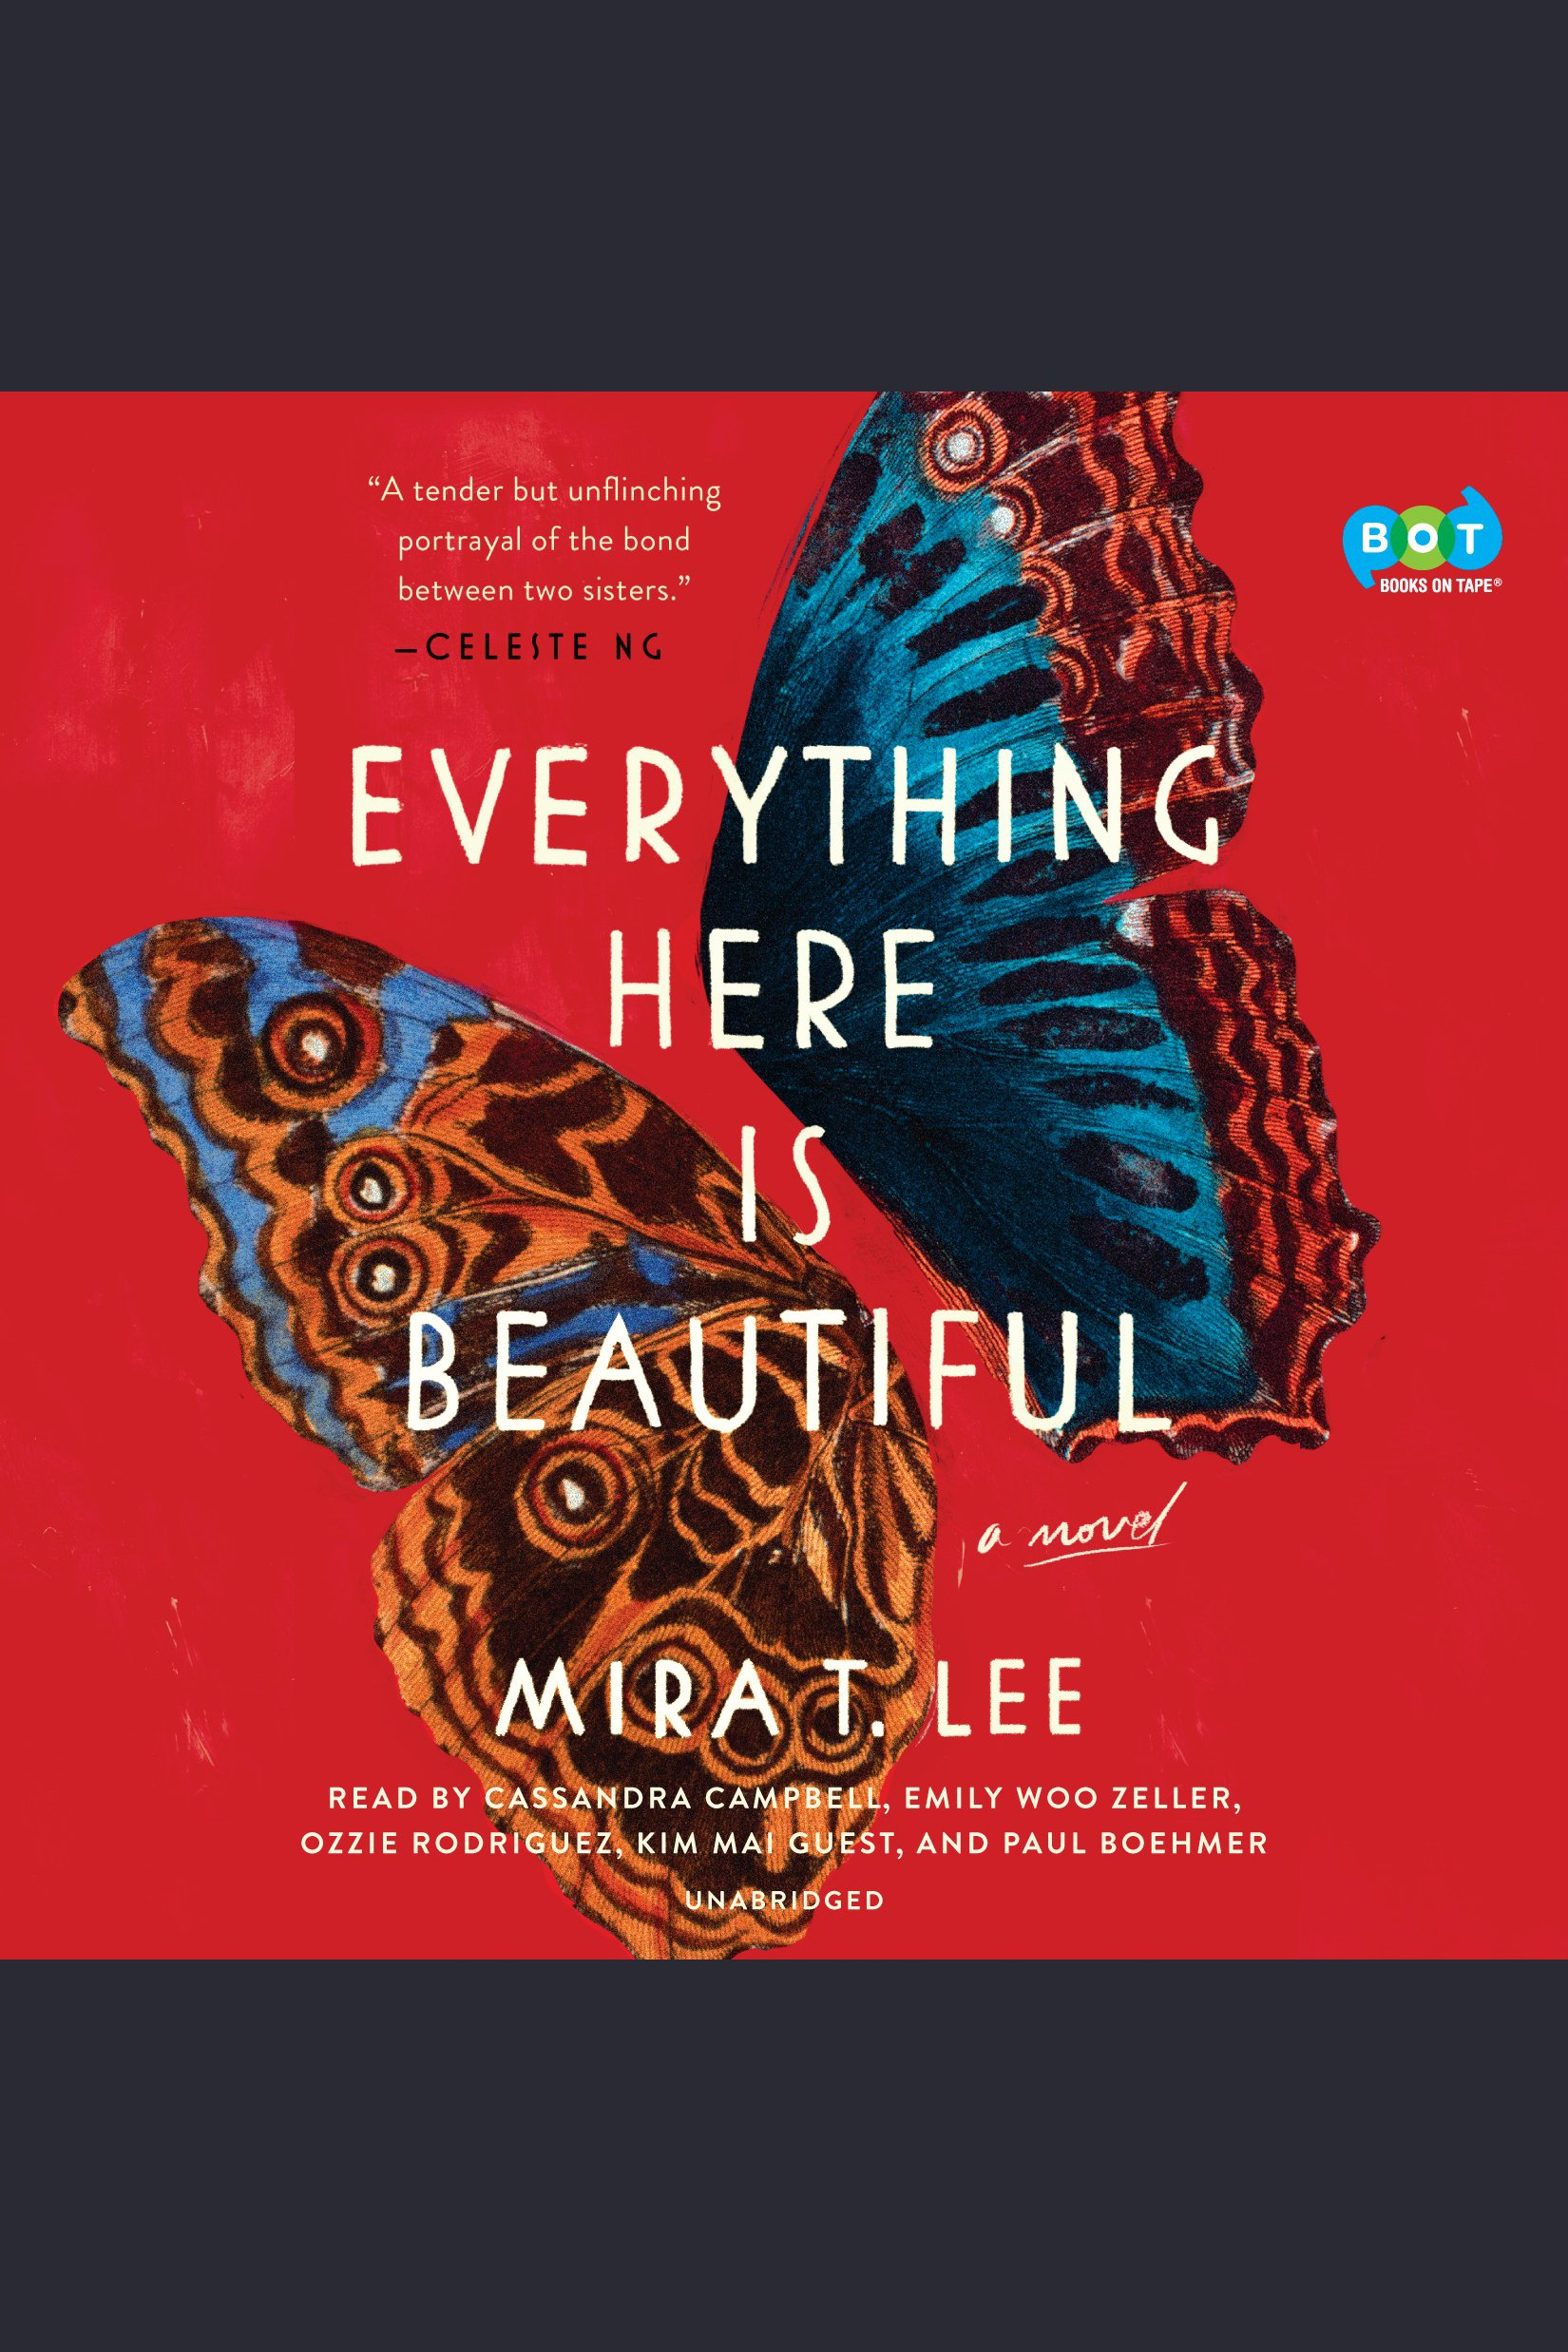 Everything here is beautiful cover image